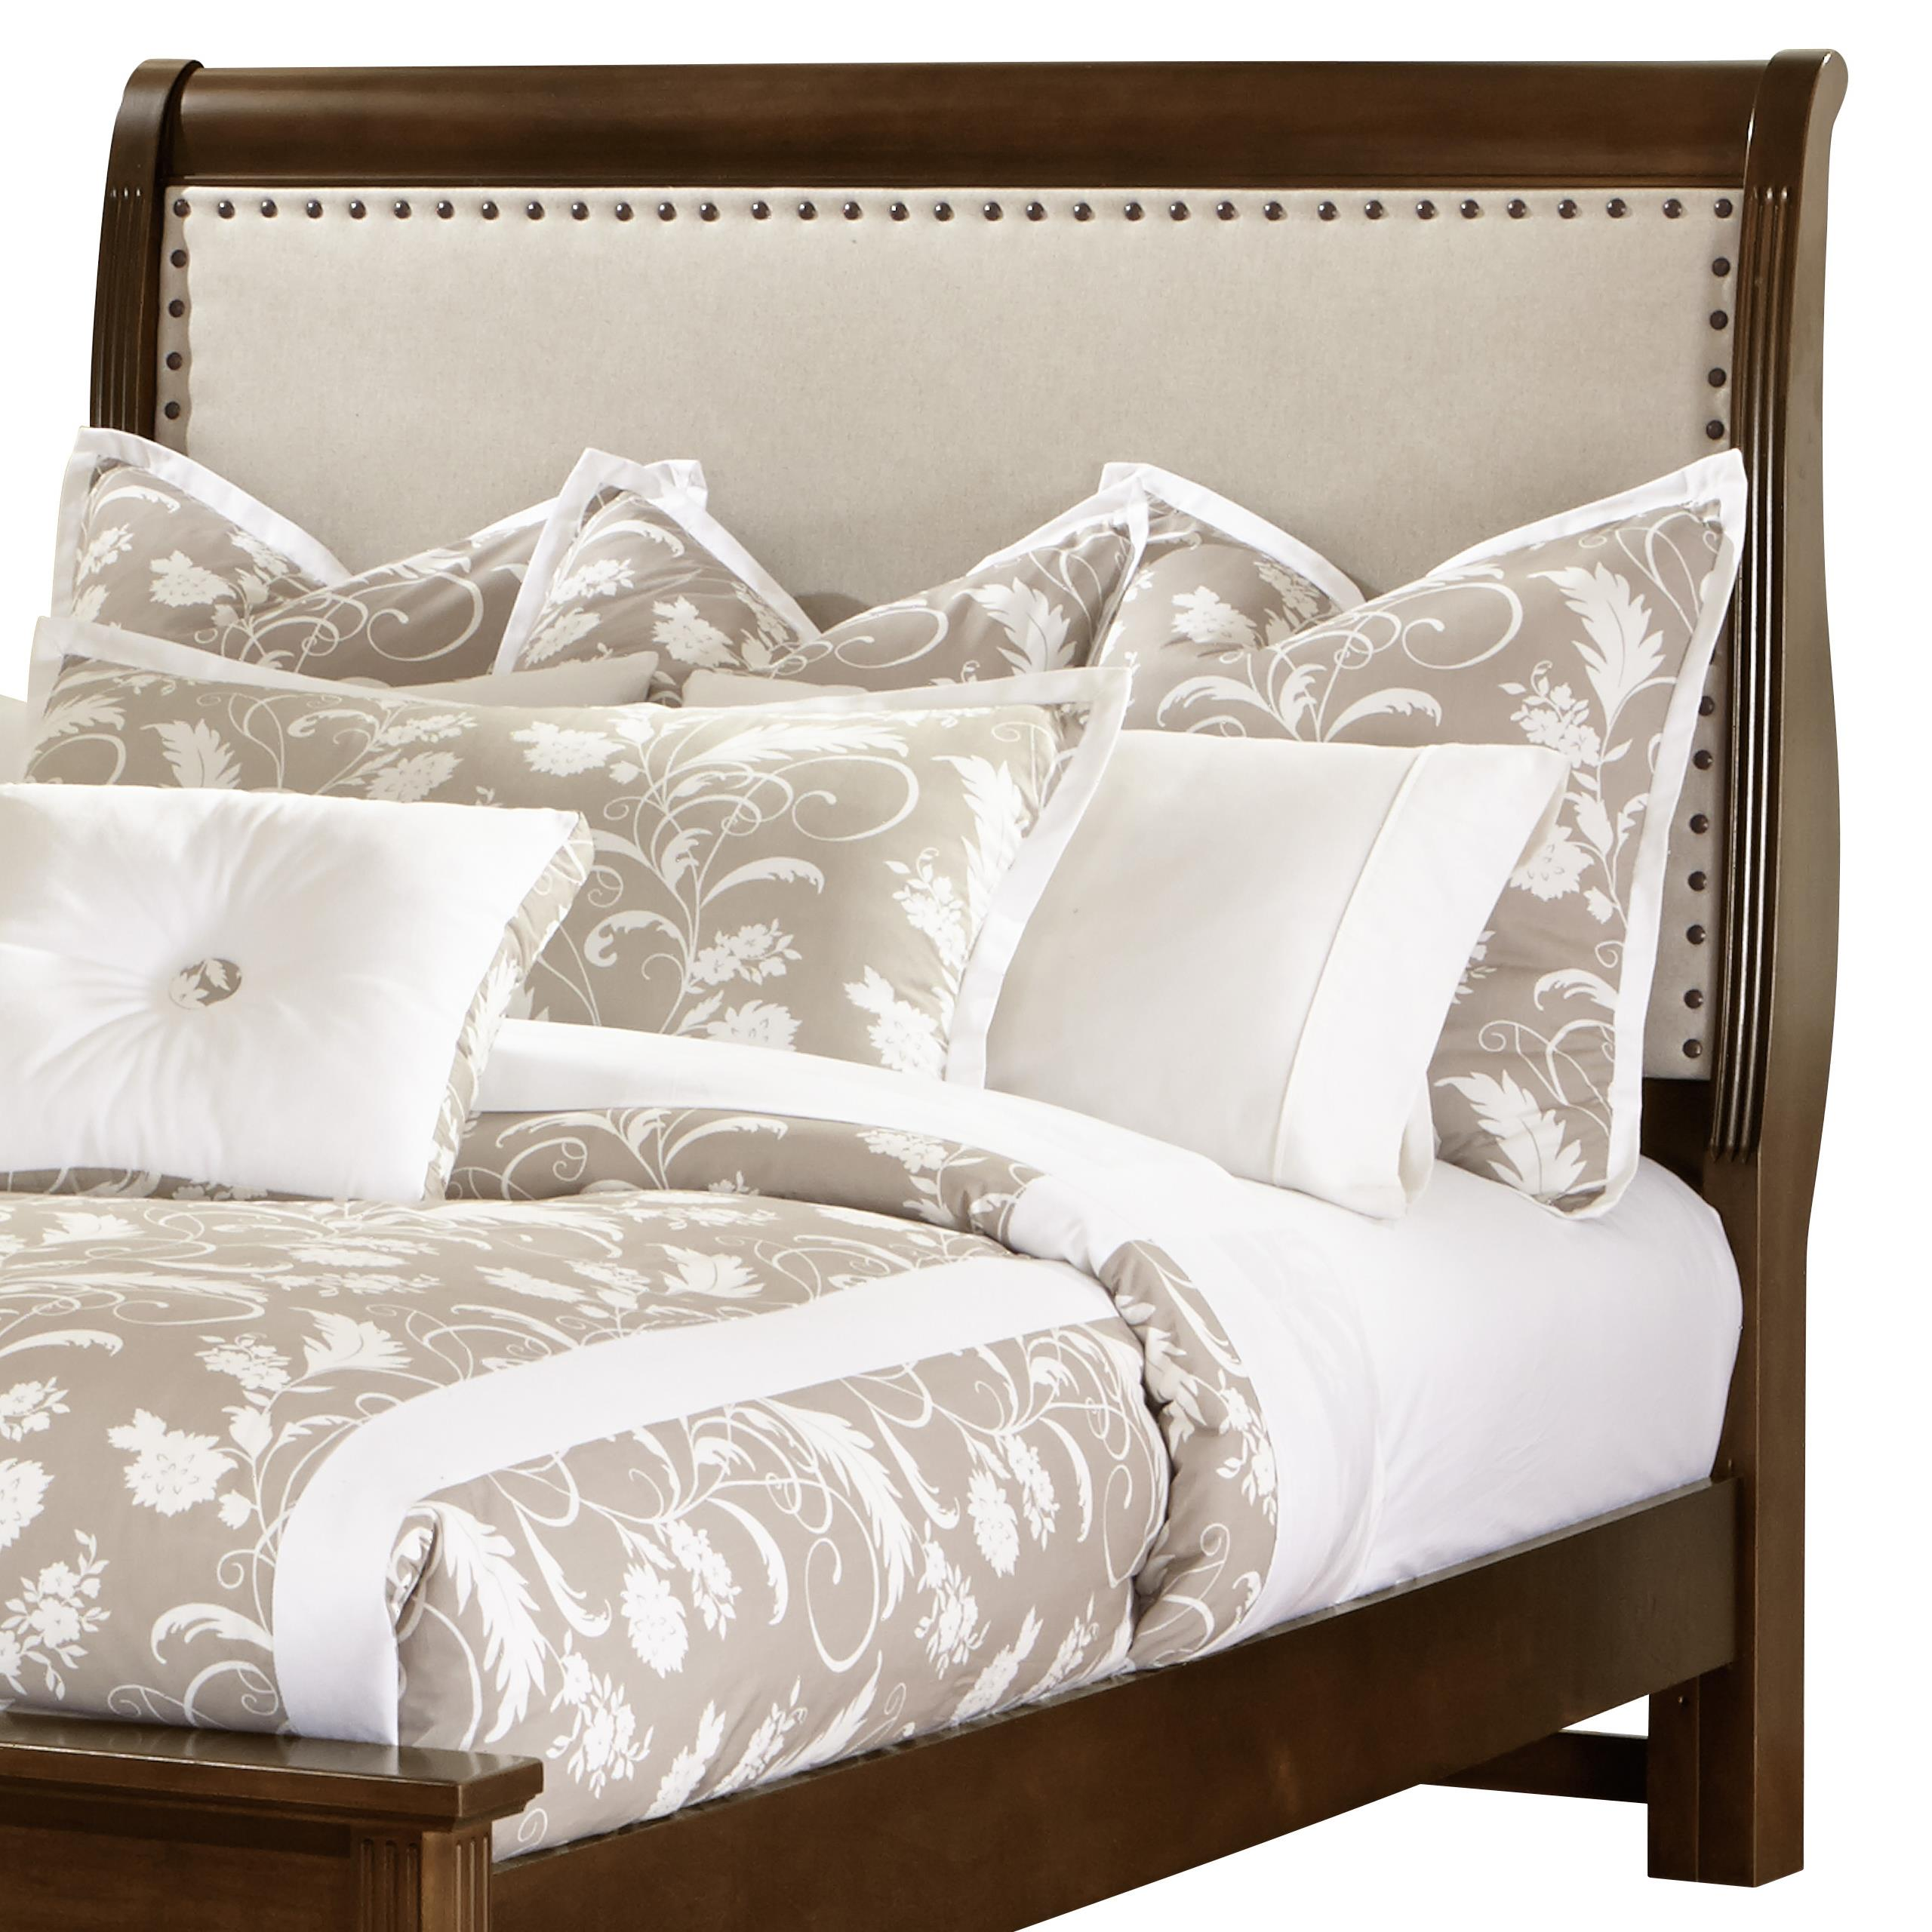 King Upholstered Headboard (Linen)